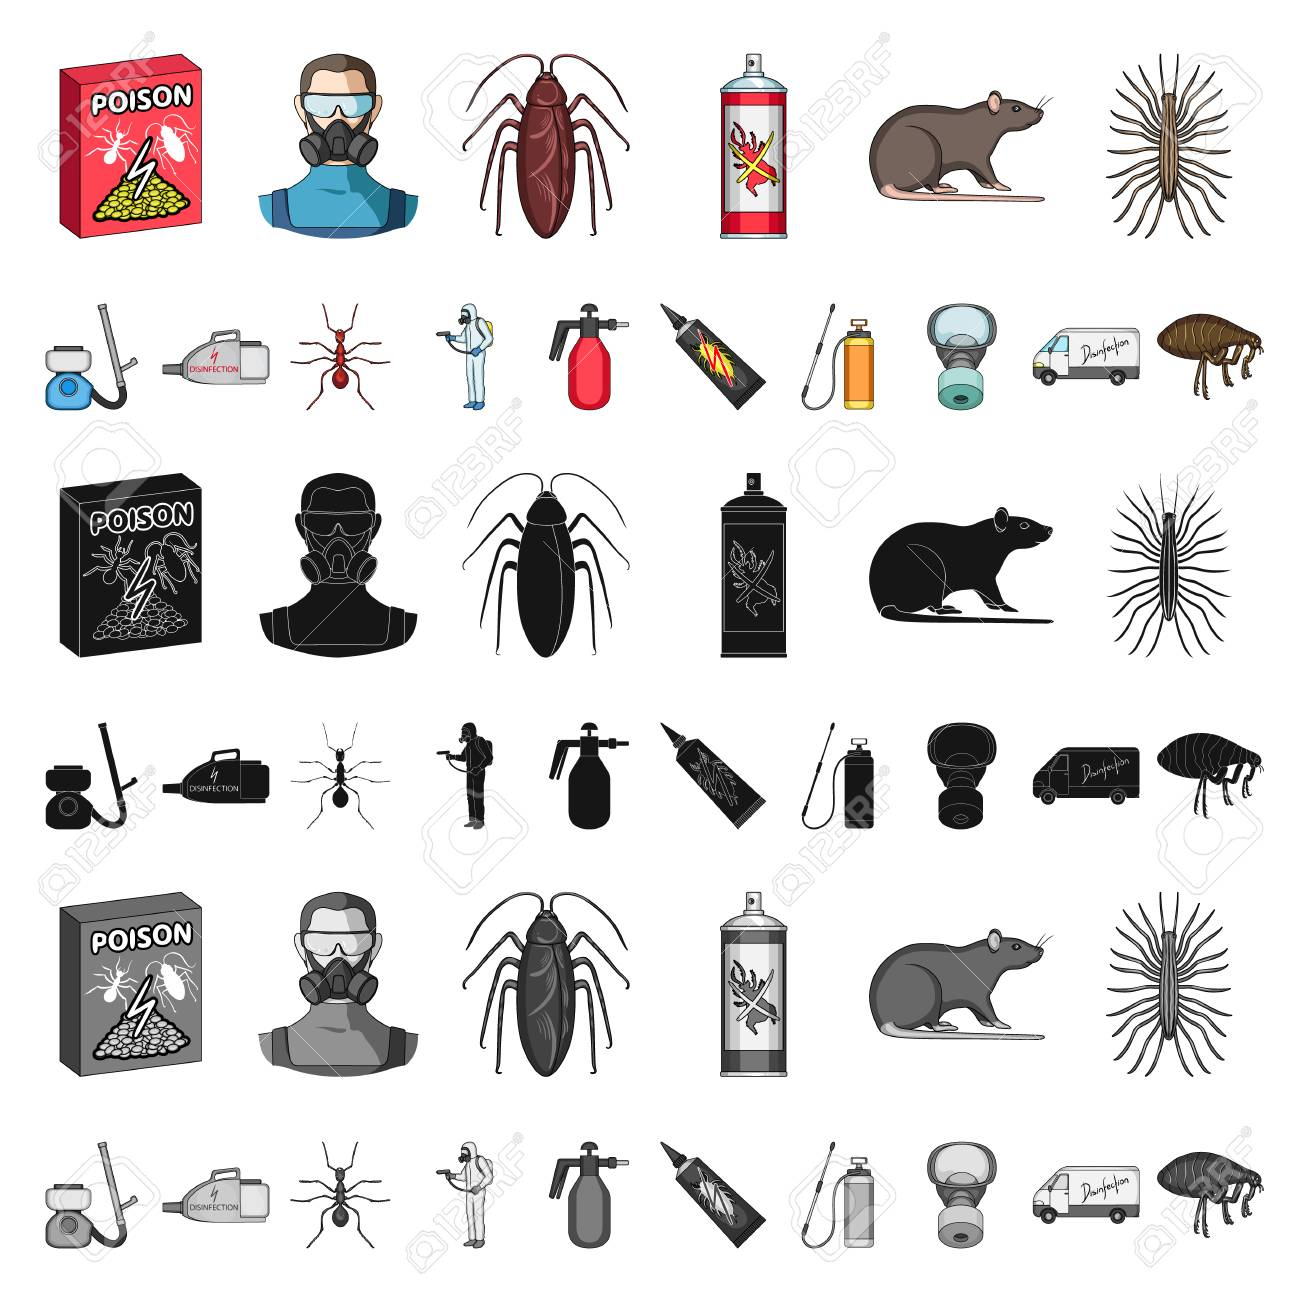 Pest, poison, personnel and equipment cartoon icons in set collection for design. Pest control service vector symbol stock illustration. - 109132672